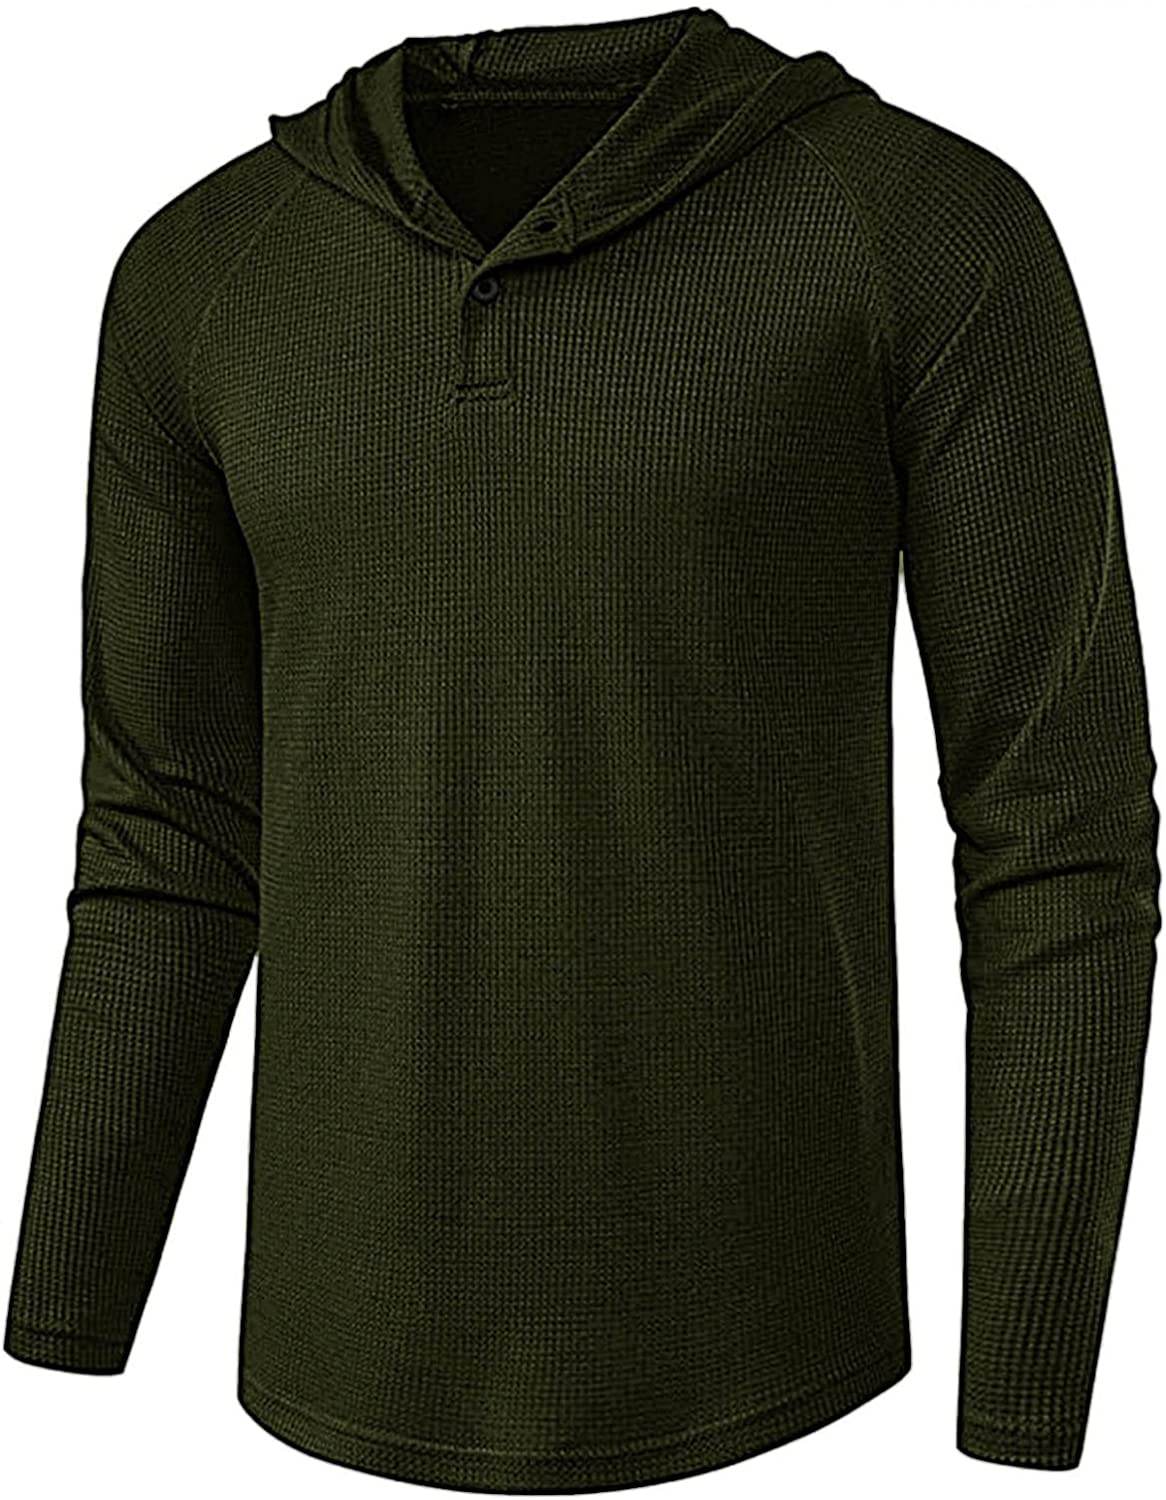 Mens Hooded Knitted Sweaters Lightweight Breathable Hoodies Pullover Casual Slim Fit Knitwears Tops Sports Blouse